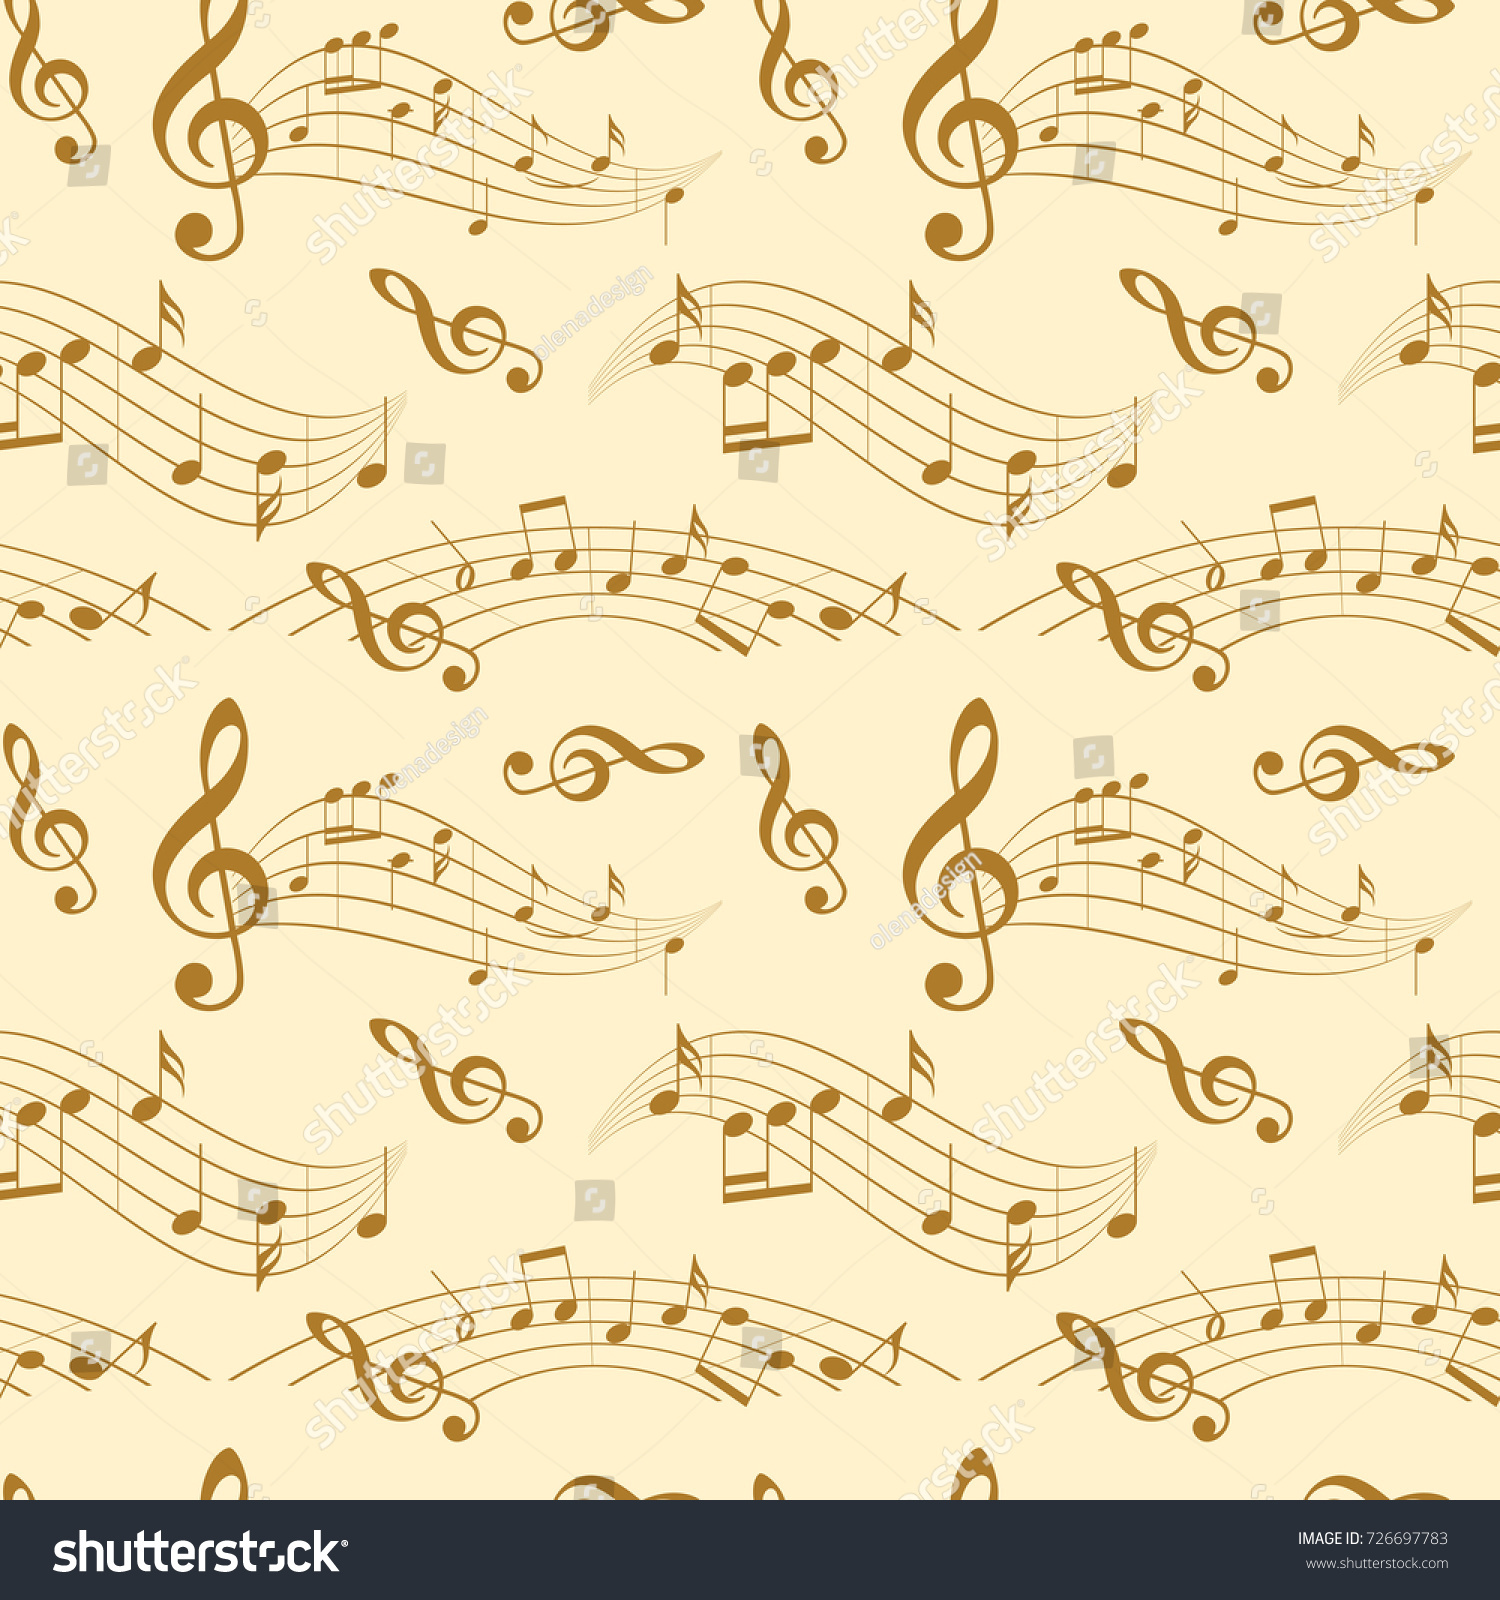 Beige Seamless Pattern Wavy Music Notes Stock Vector HD (Royalty ...